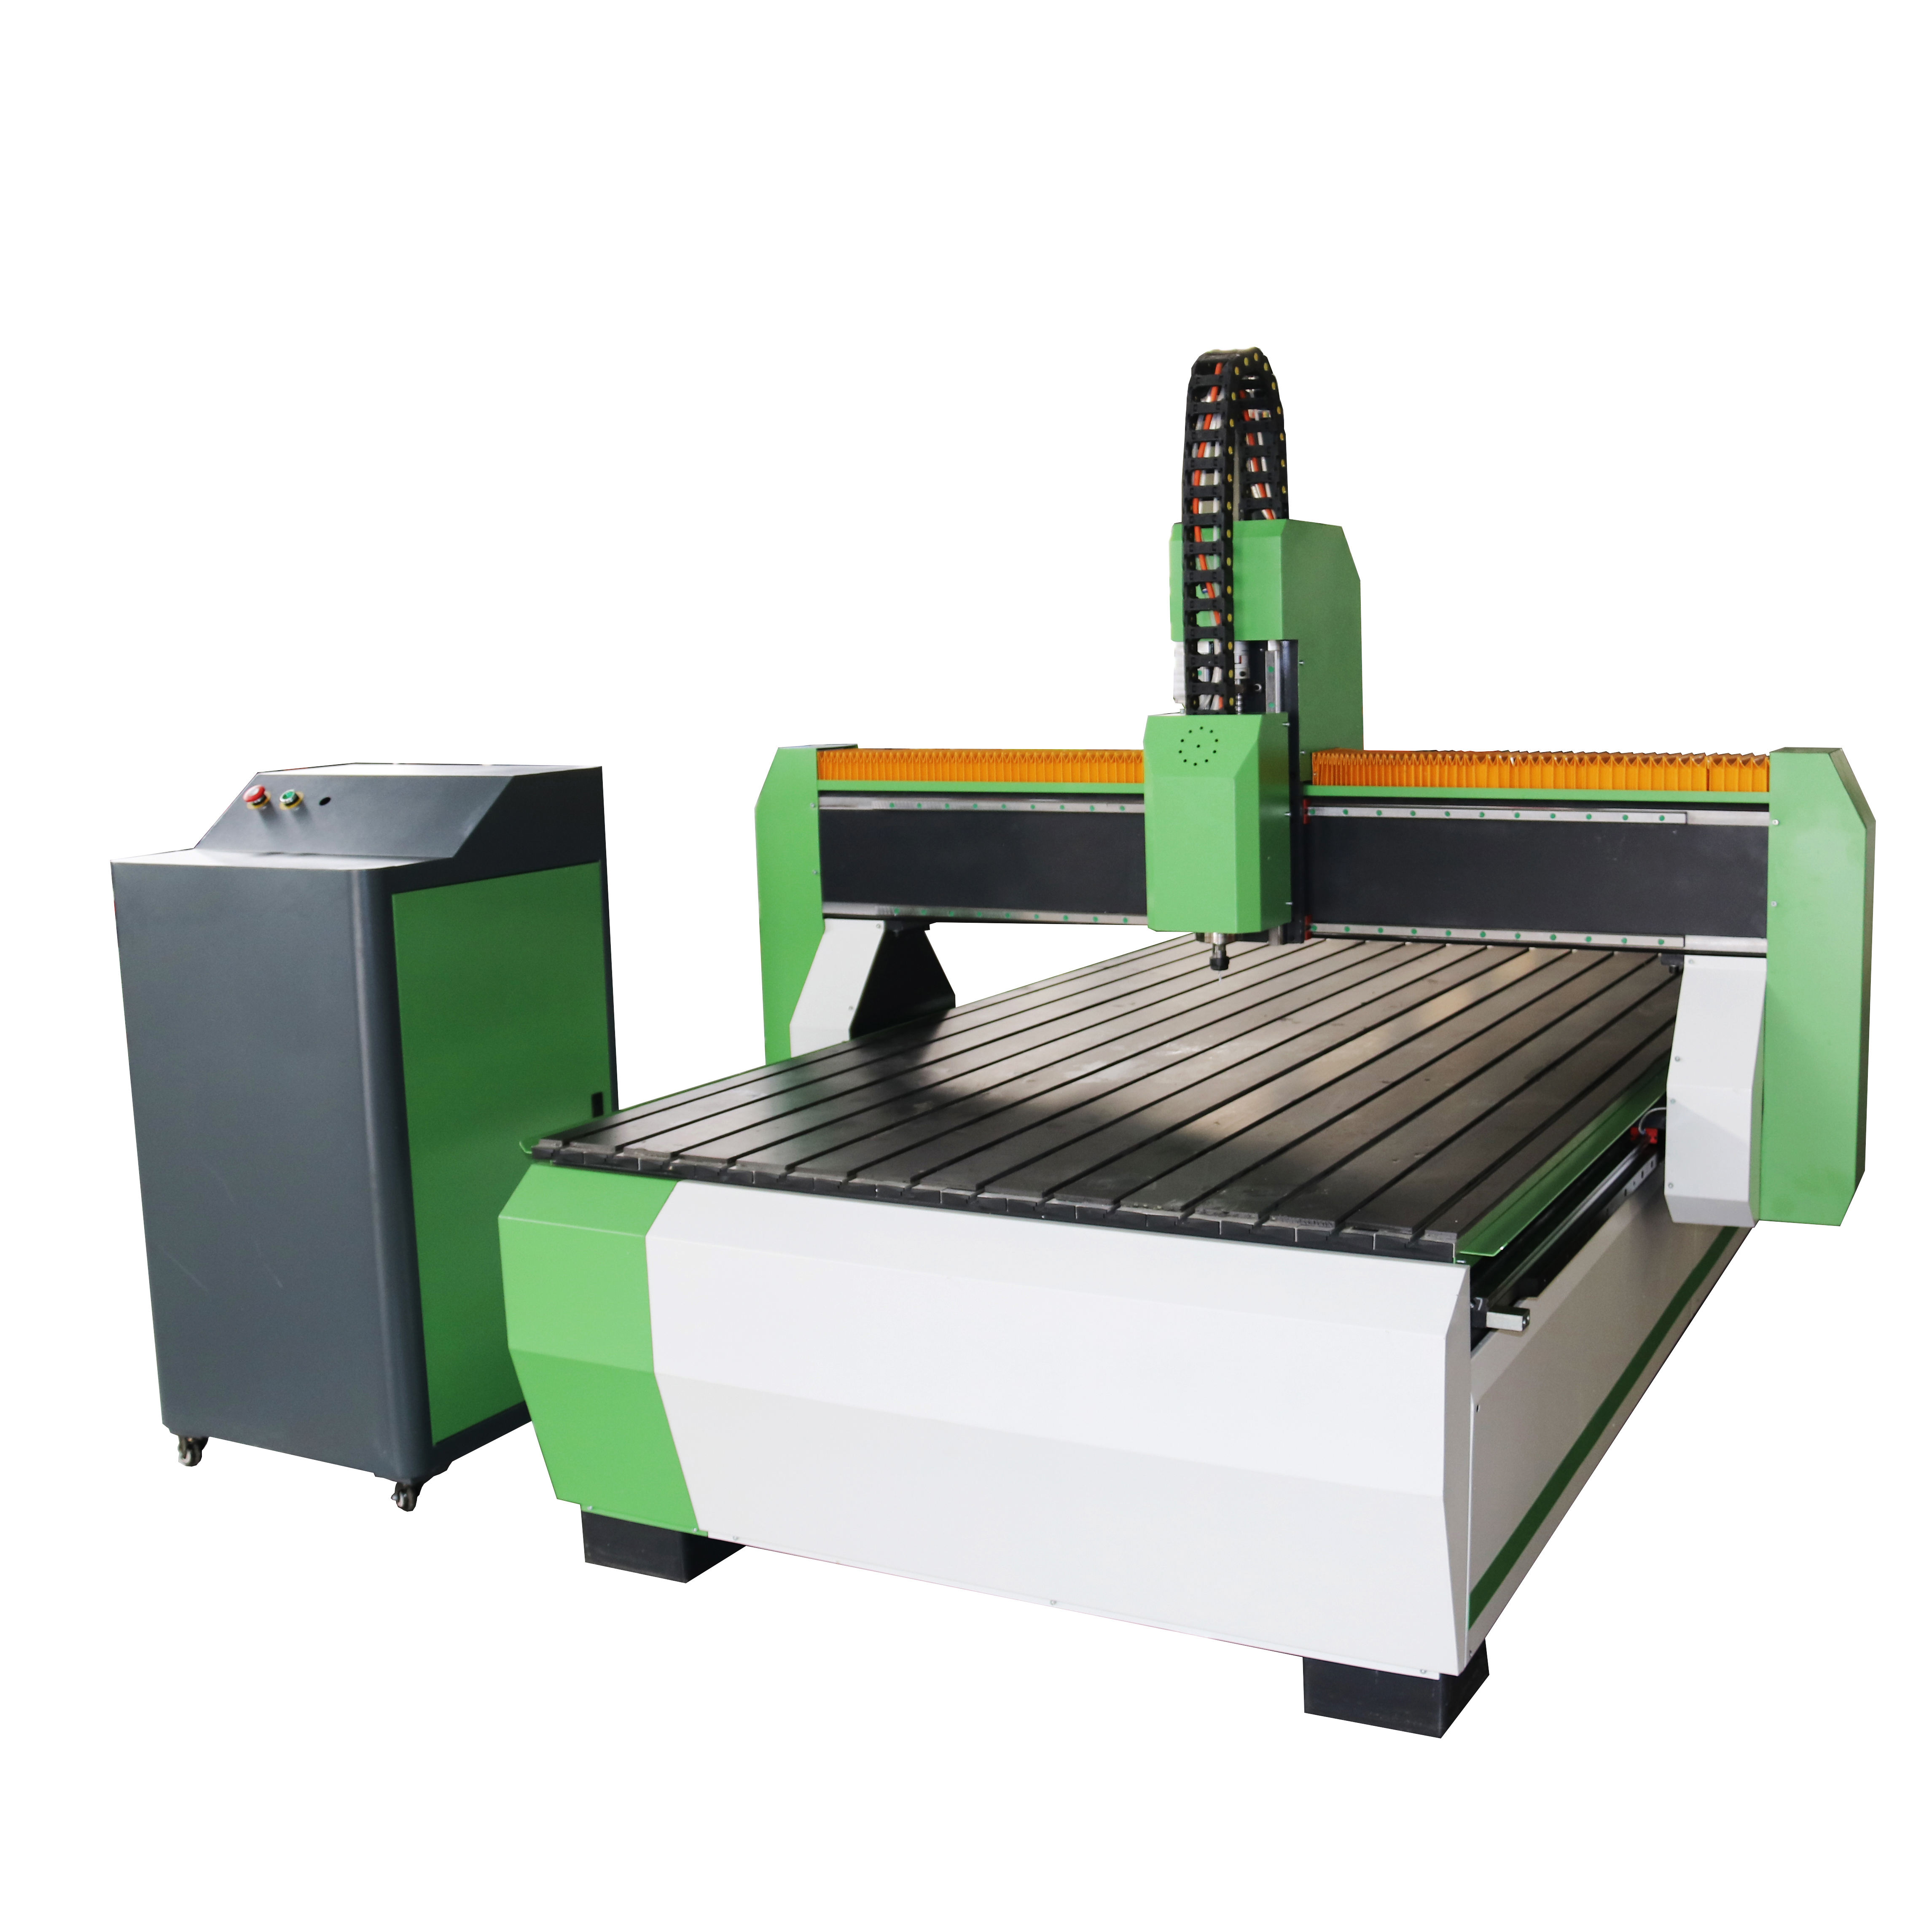 New product 4 axis mold making wood working cnc router cnc milling machine